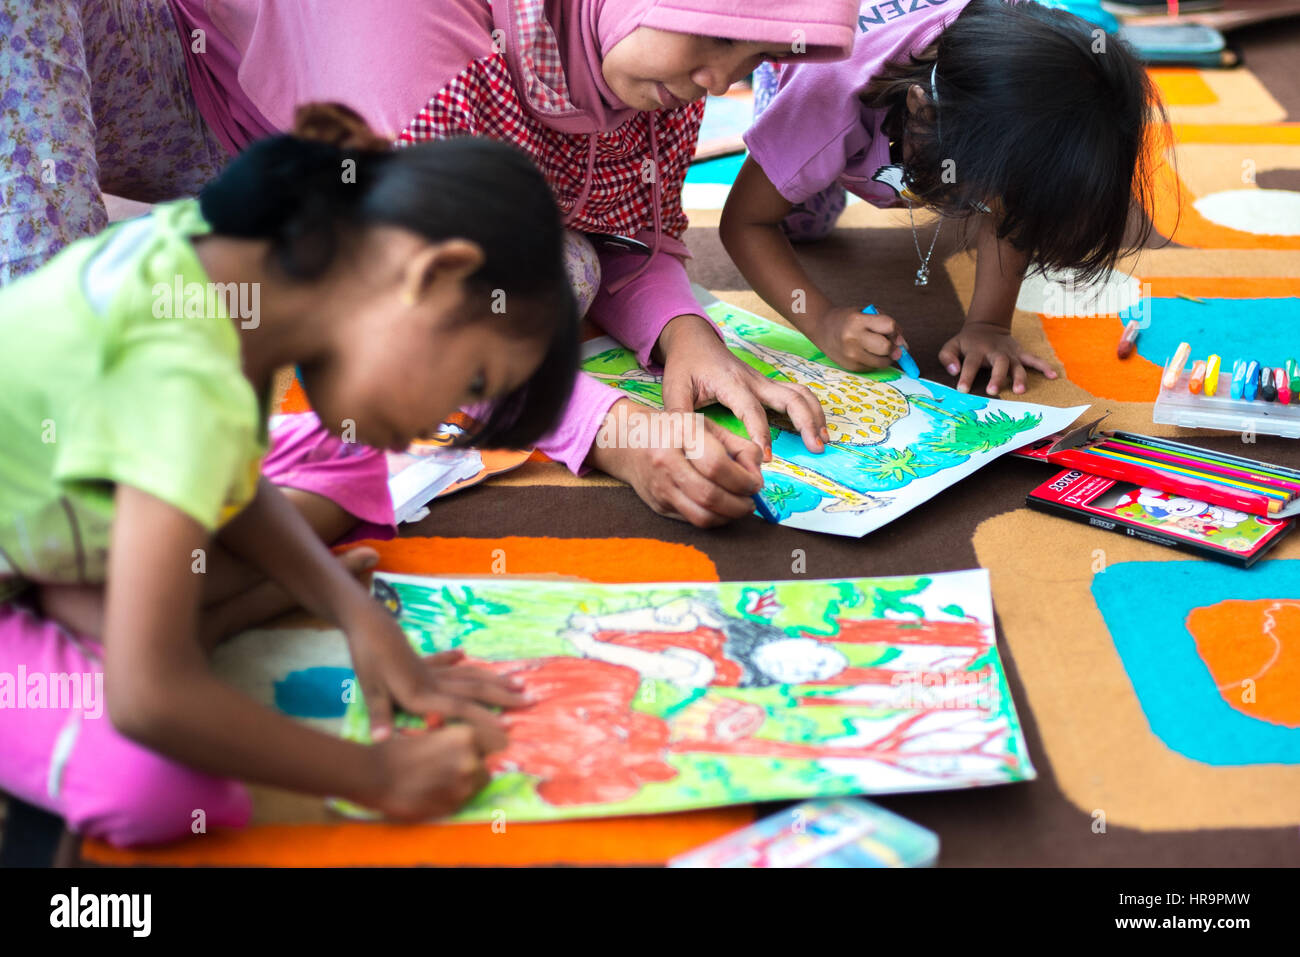 Female children drawing with mother. - Stock Image